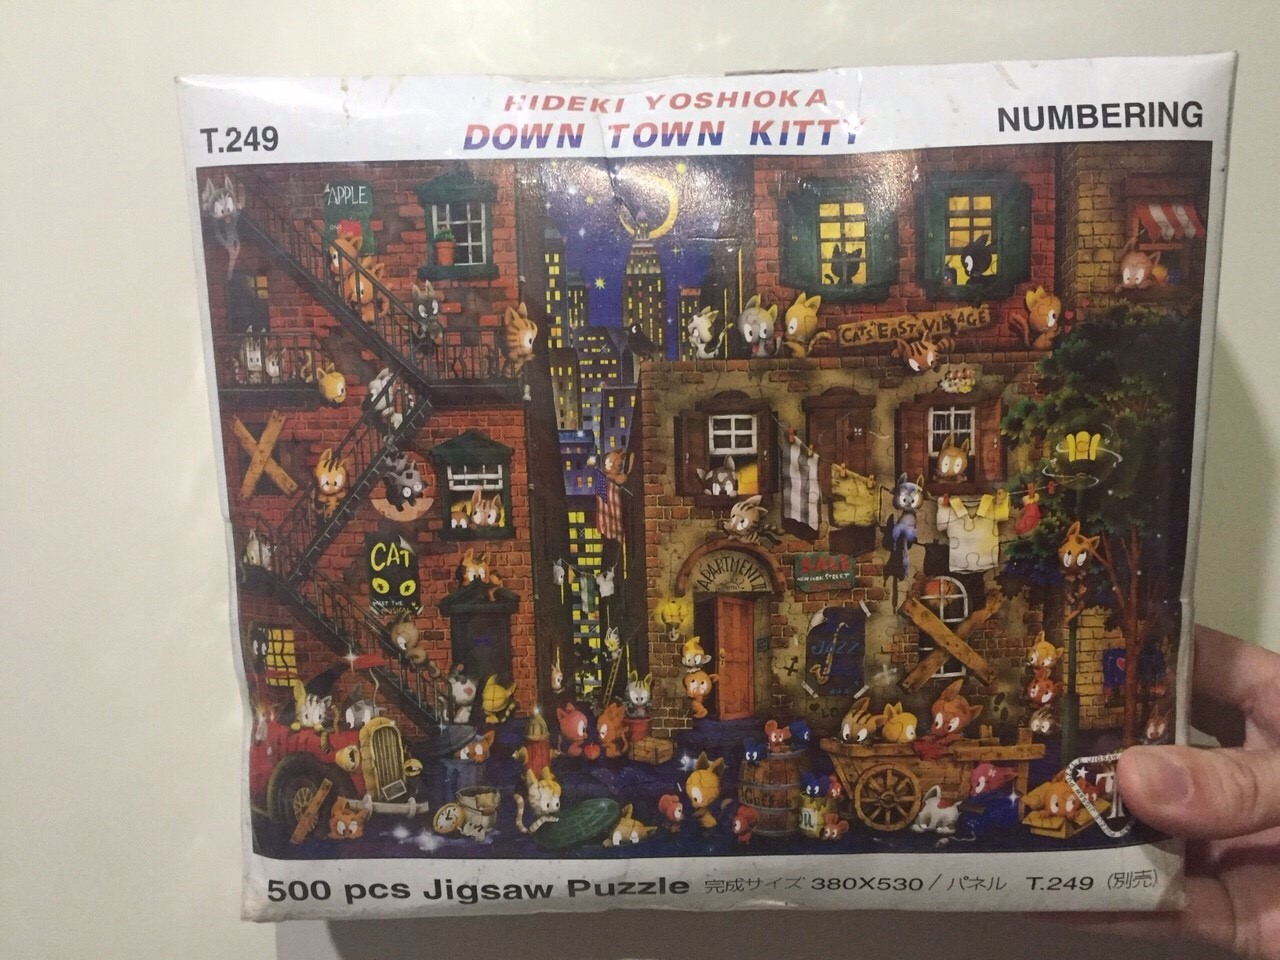 จิ๊กซอว์ 500 ชิ้น Numbering Jigsaw Puzzle 500 Pieces Size 53 x 38 cm.